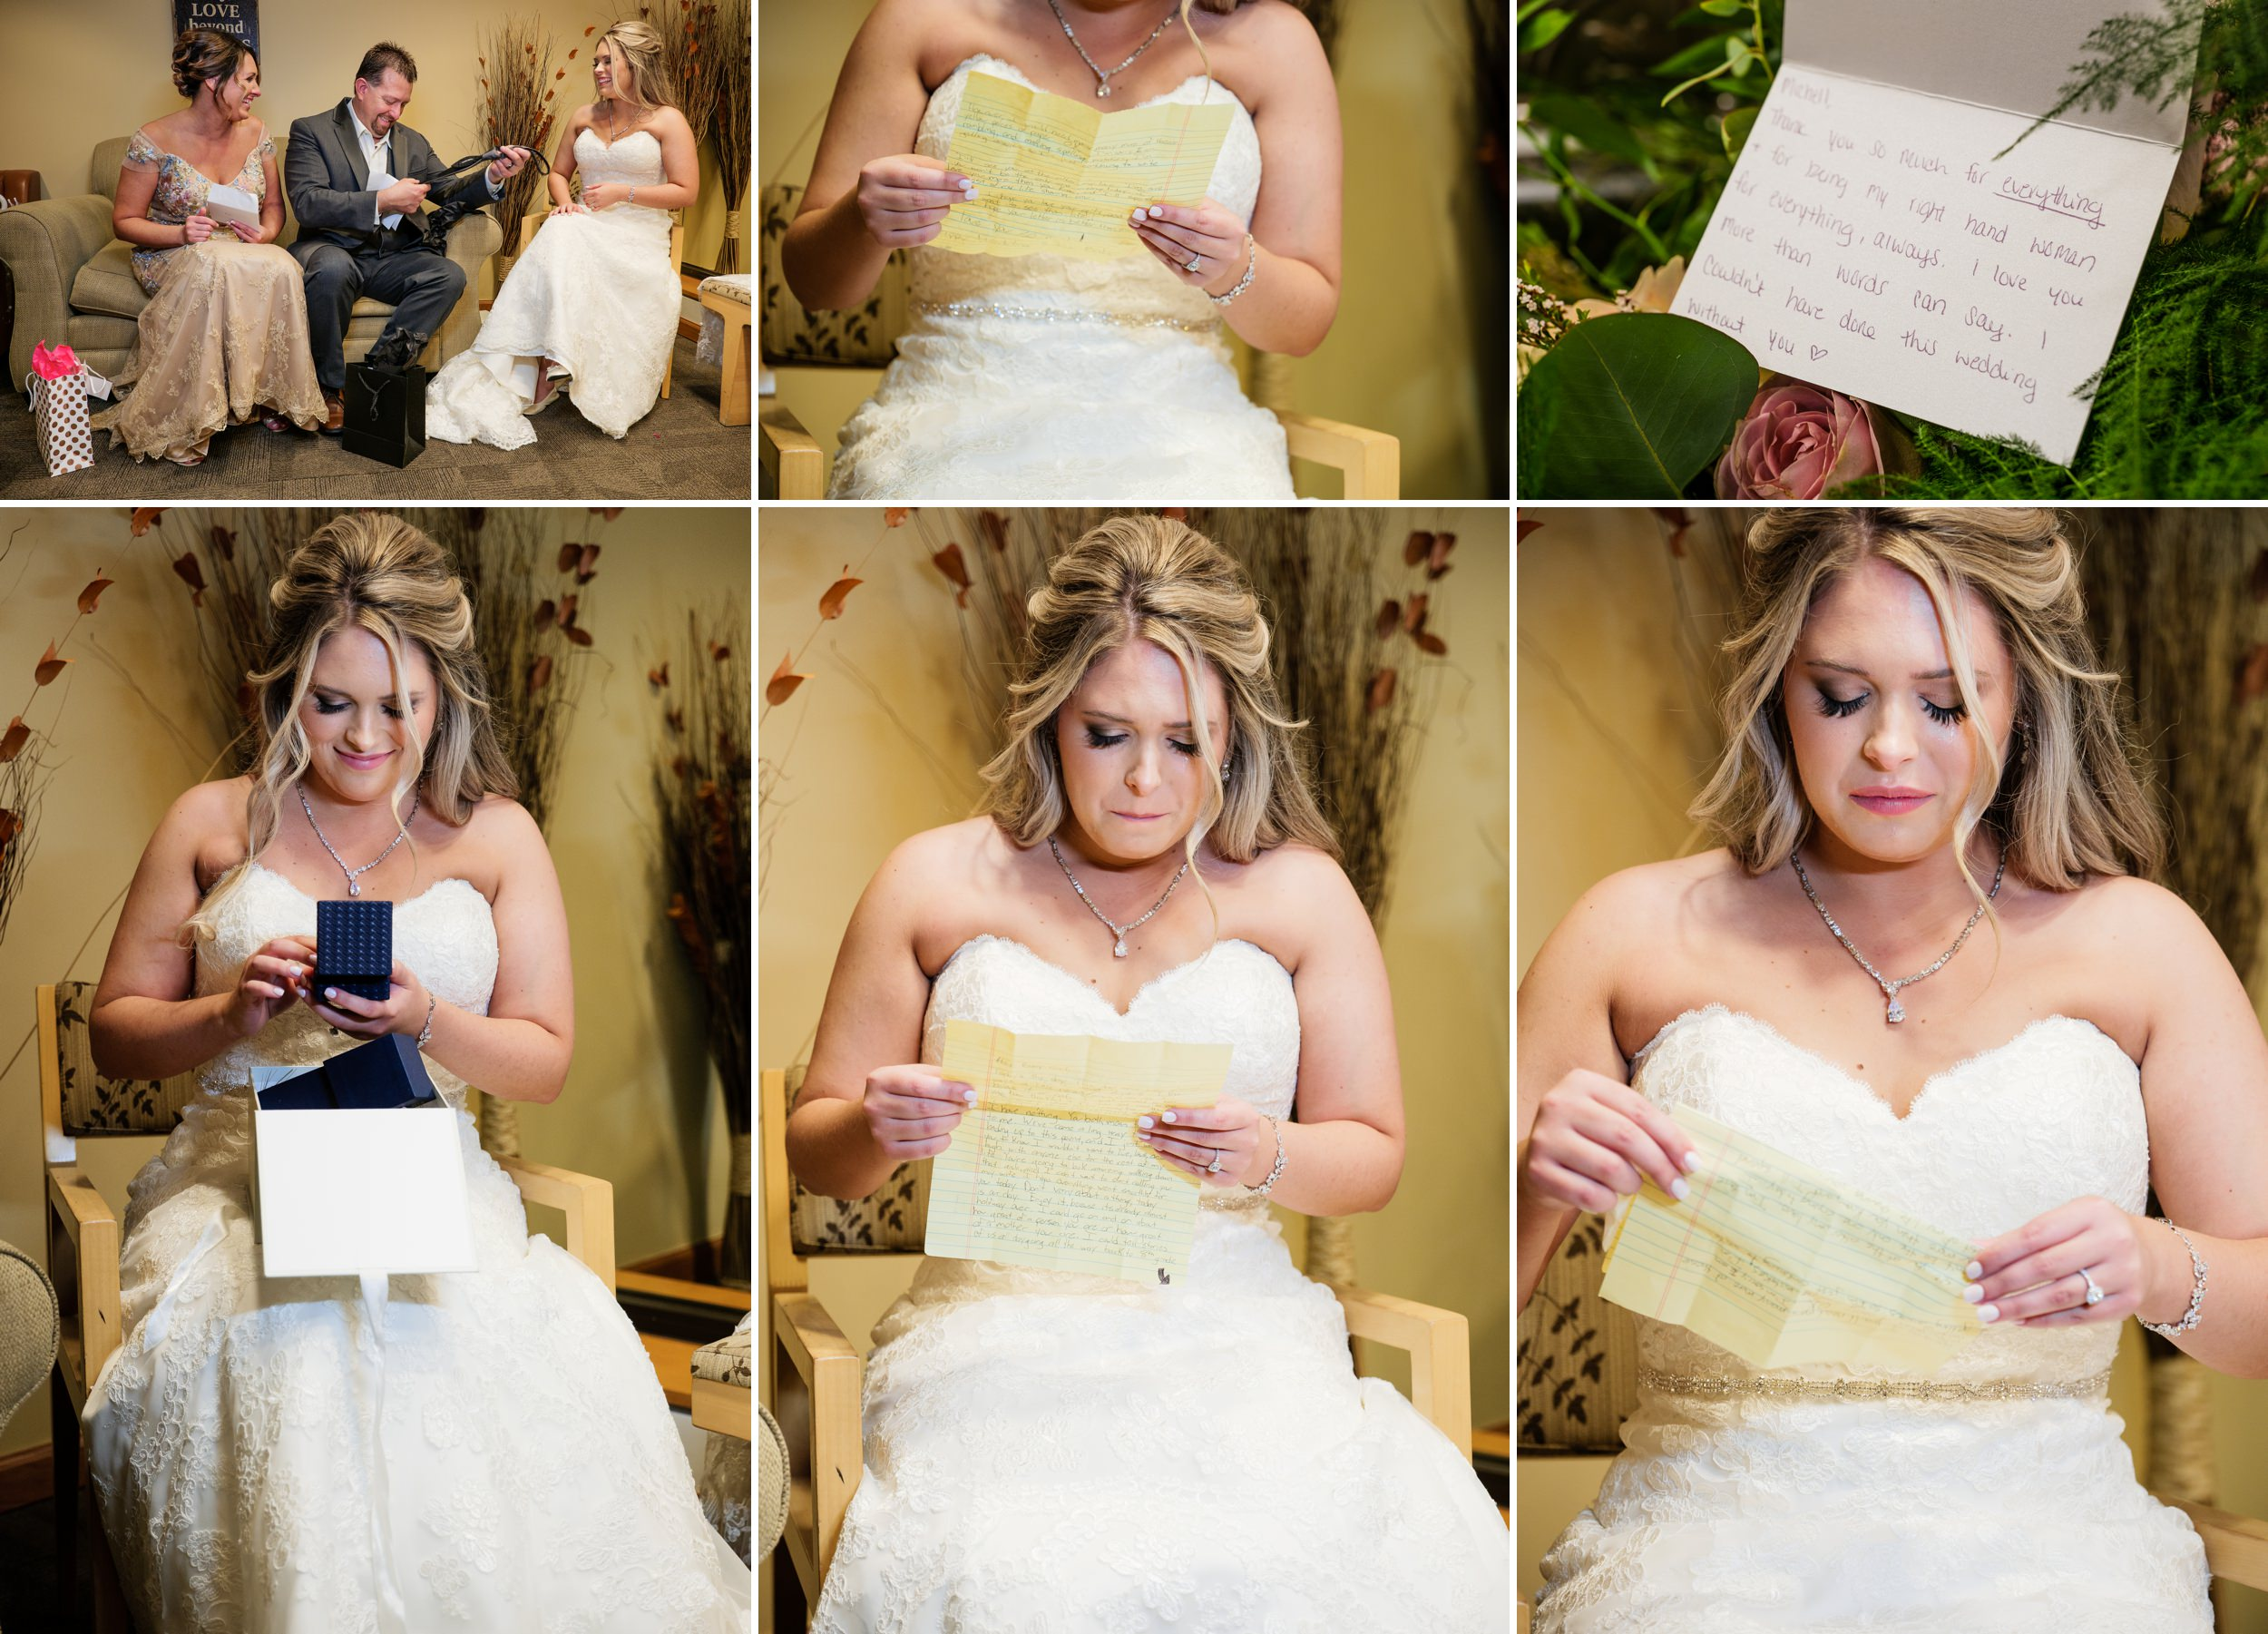 Gifts, letters of love and happy tears on wedding day at Centennial Park.